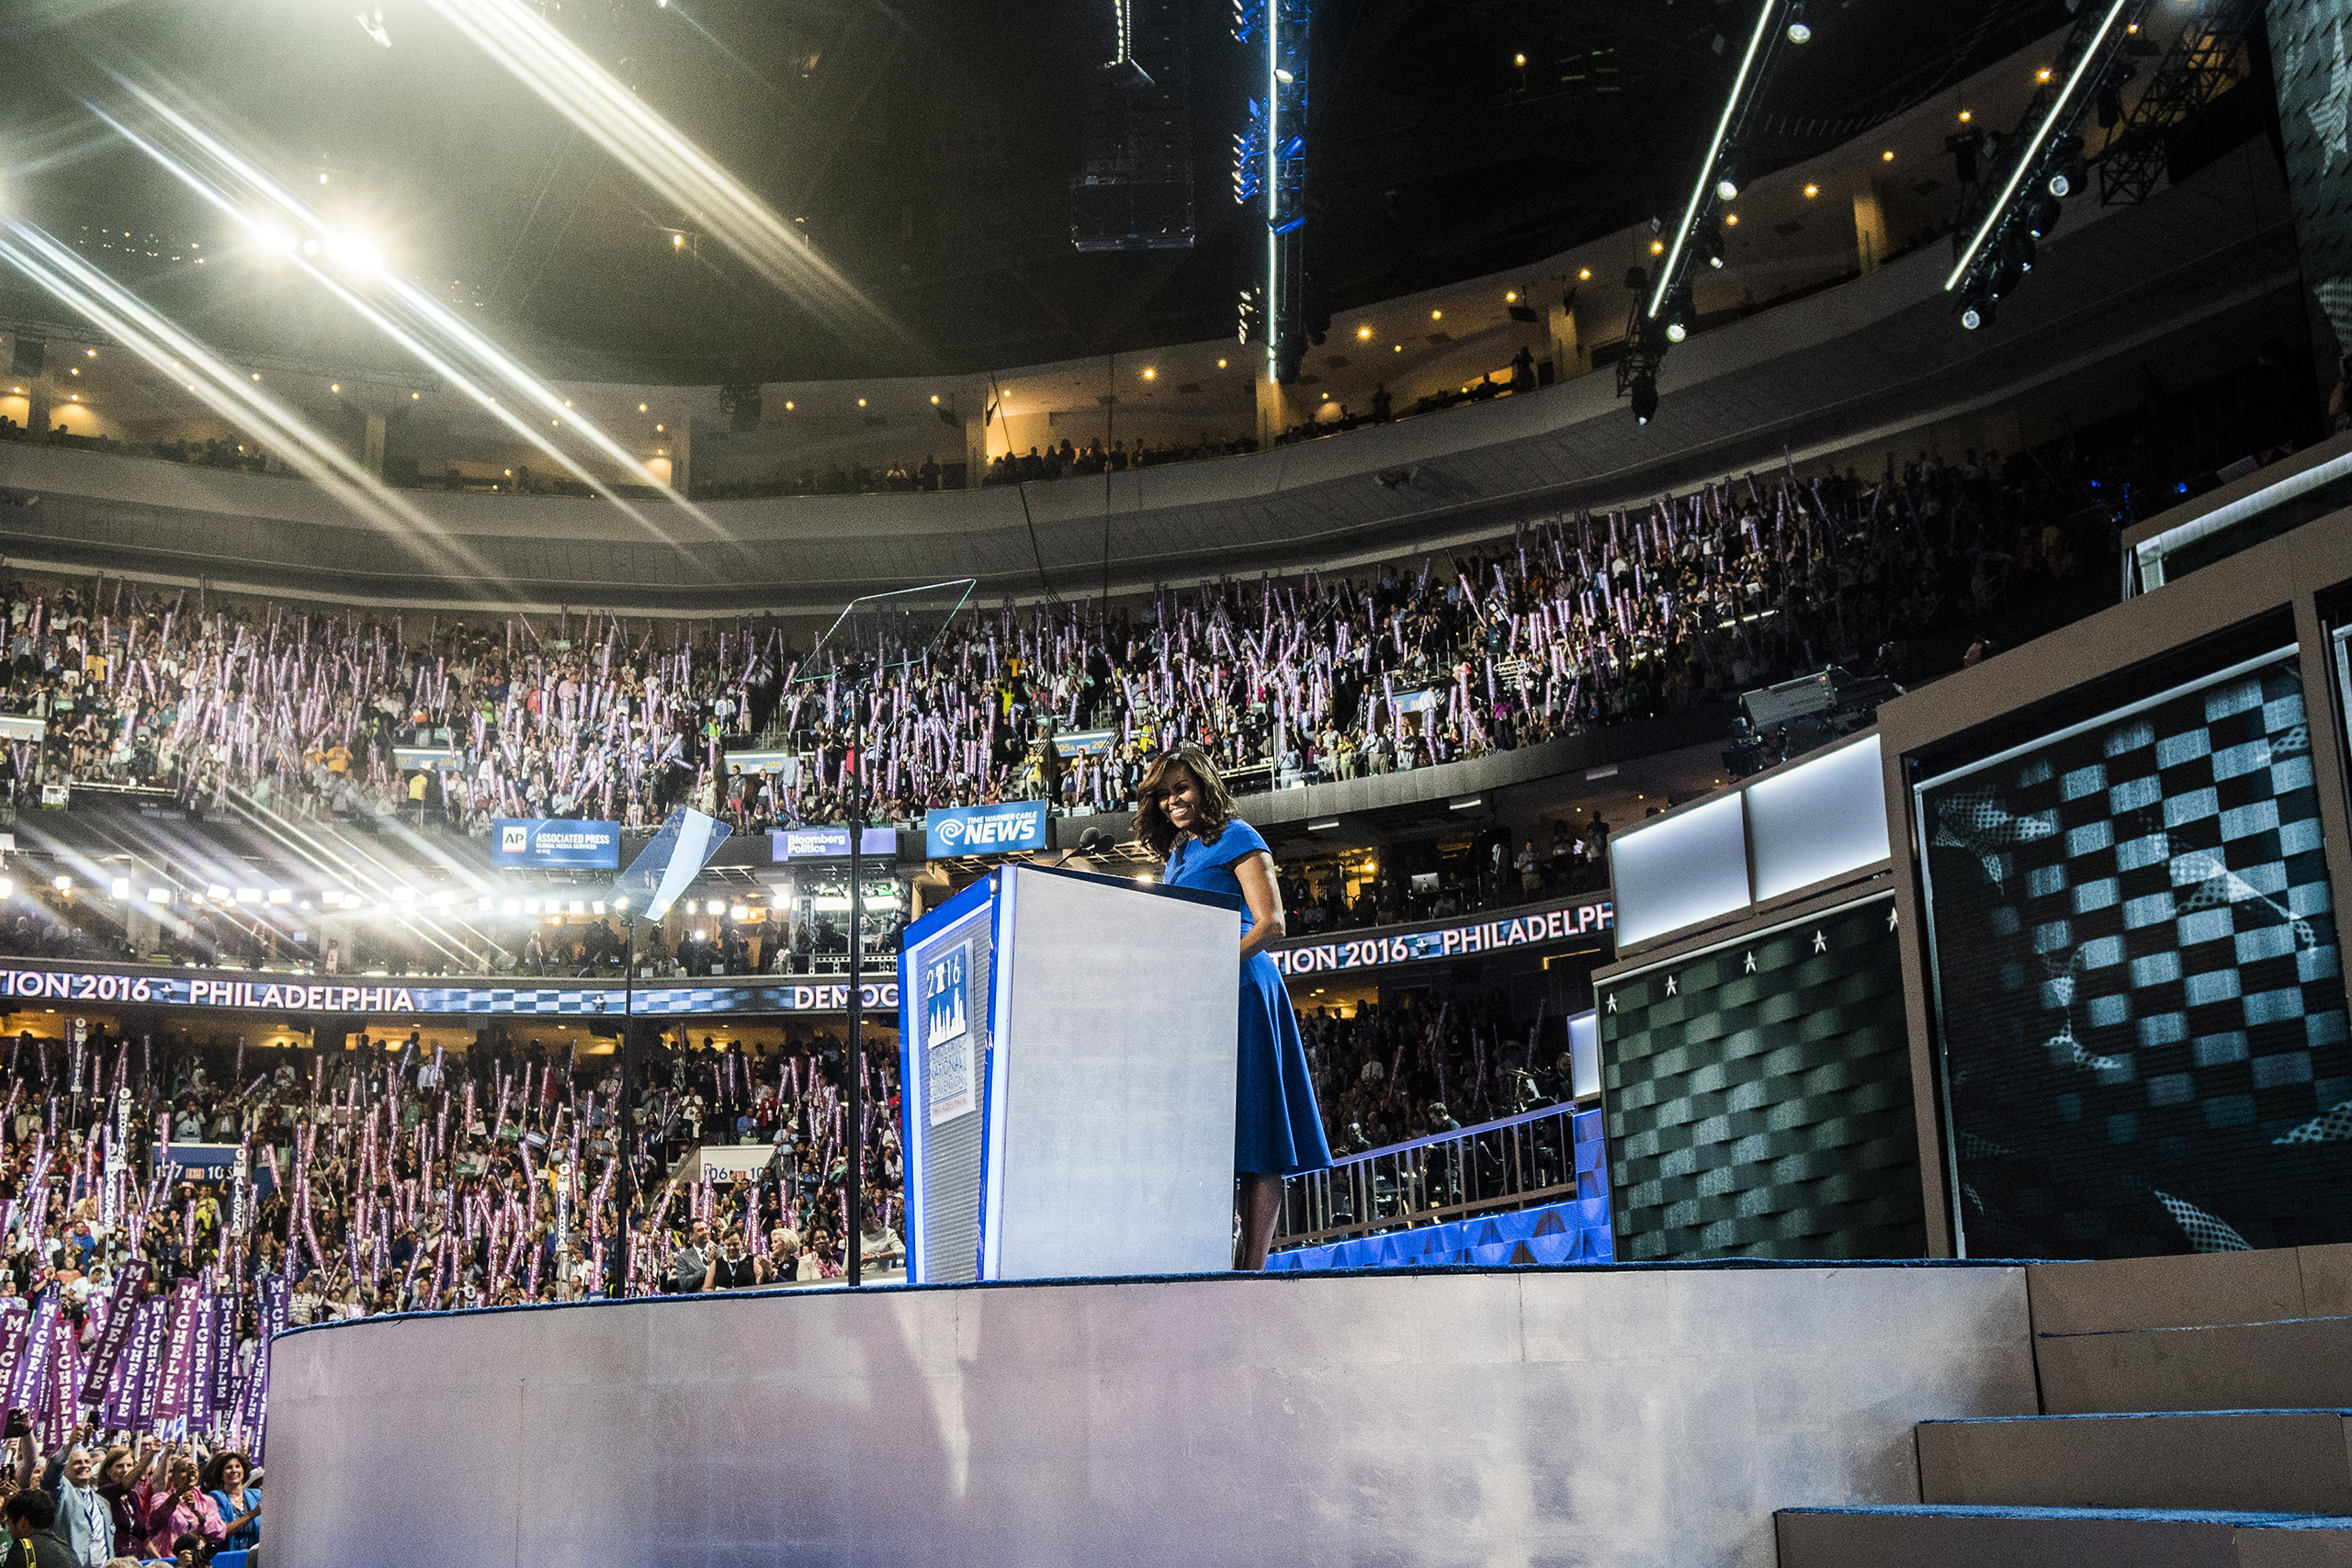 First lady Michelle Obama delivering remarks on the first day of the Democratic National Convention at the Wells Fargo Center, July 25, 2016 in Philadelphia, Pennsylvania.